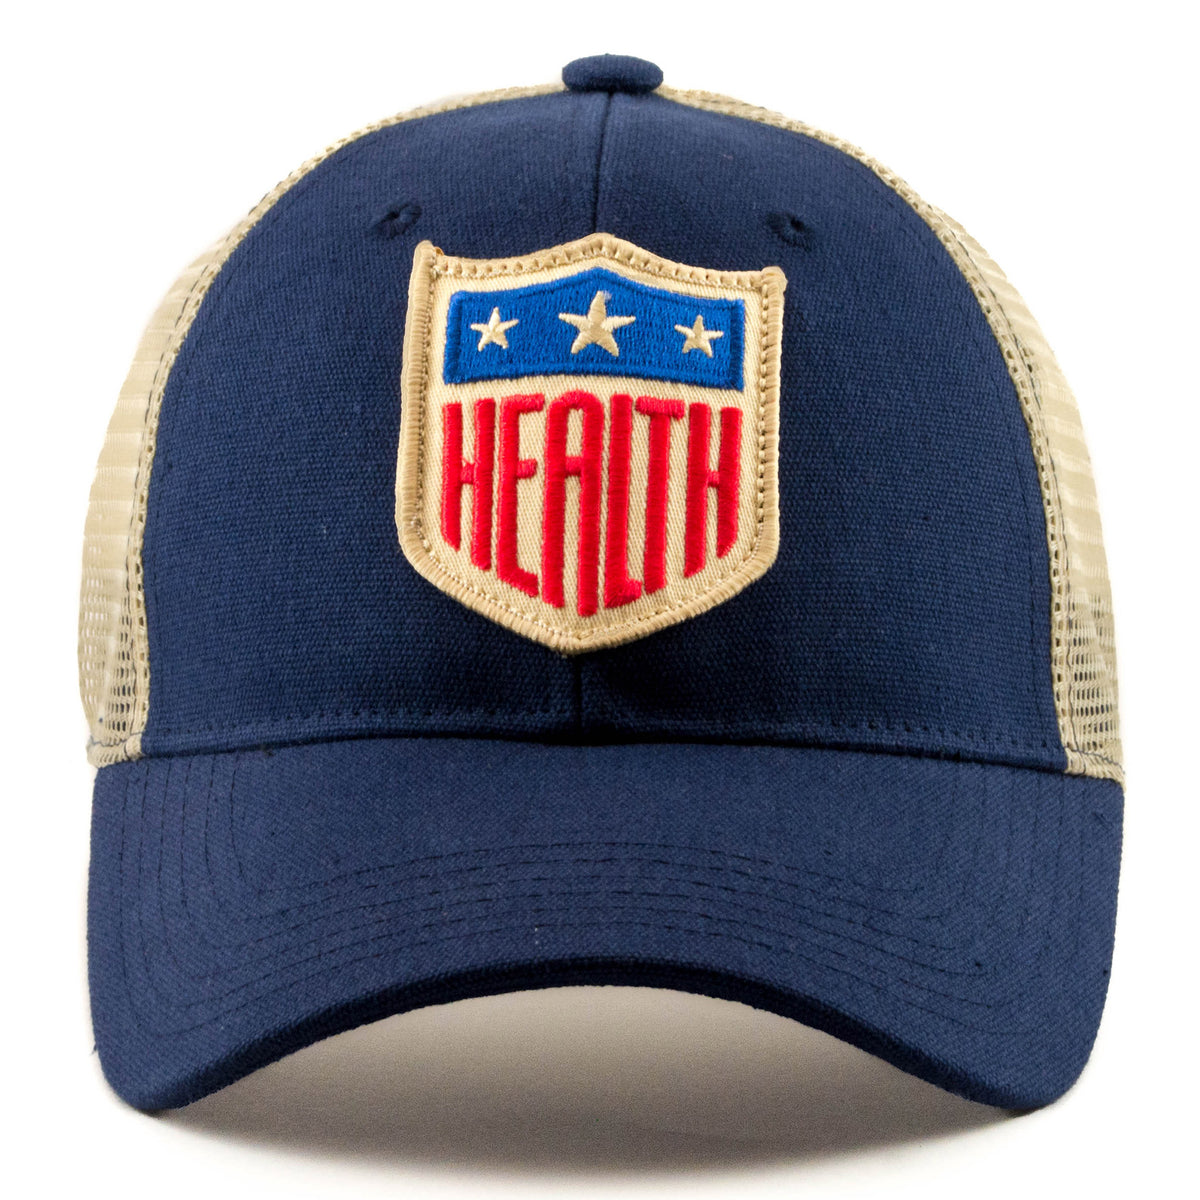 US Health Shield Patch on retro vintage mesh trucker hat